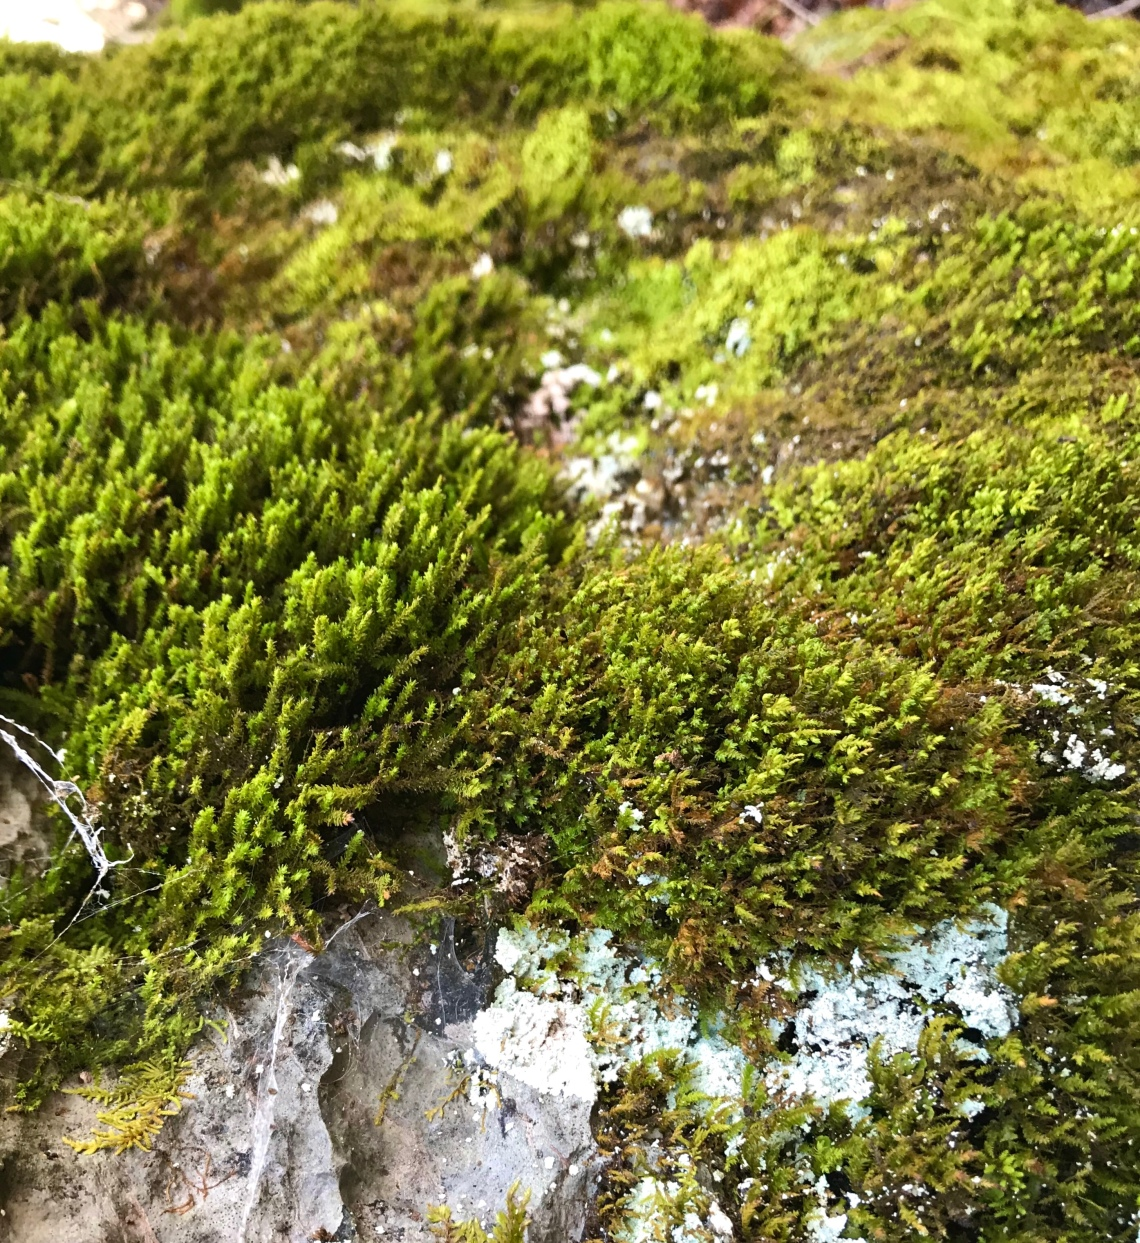 A limestone outcrop coated in moss and lichens in Virginia's Shenandoah Valley